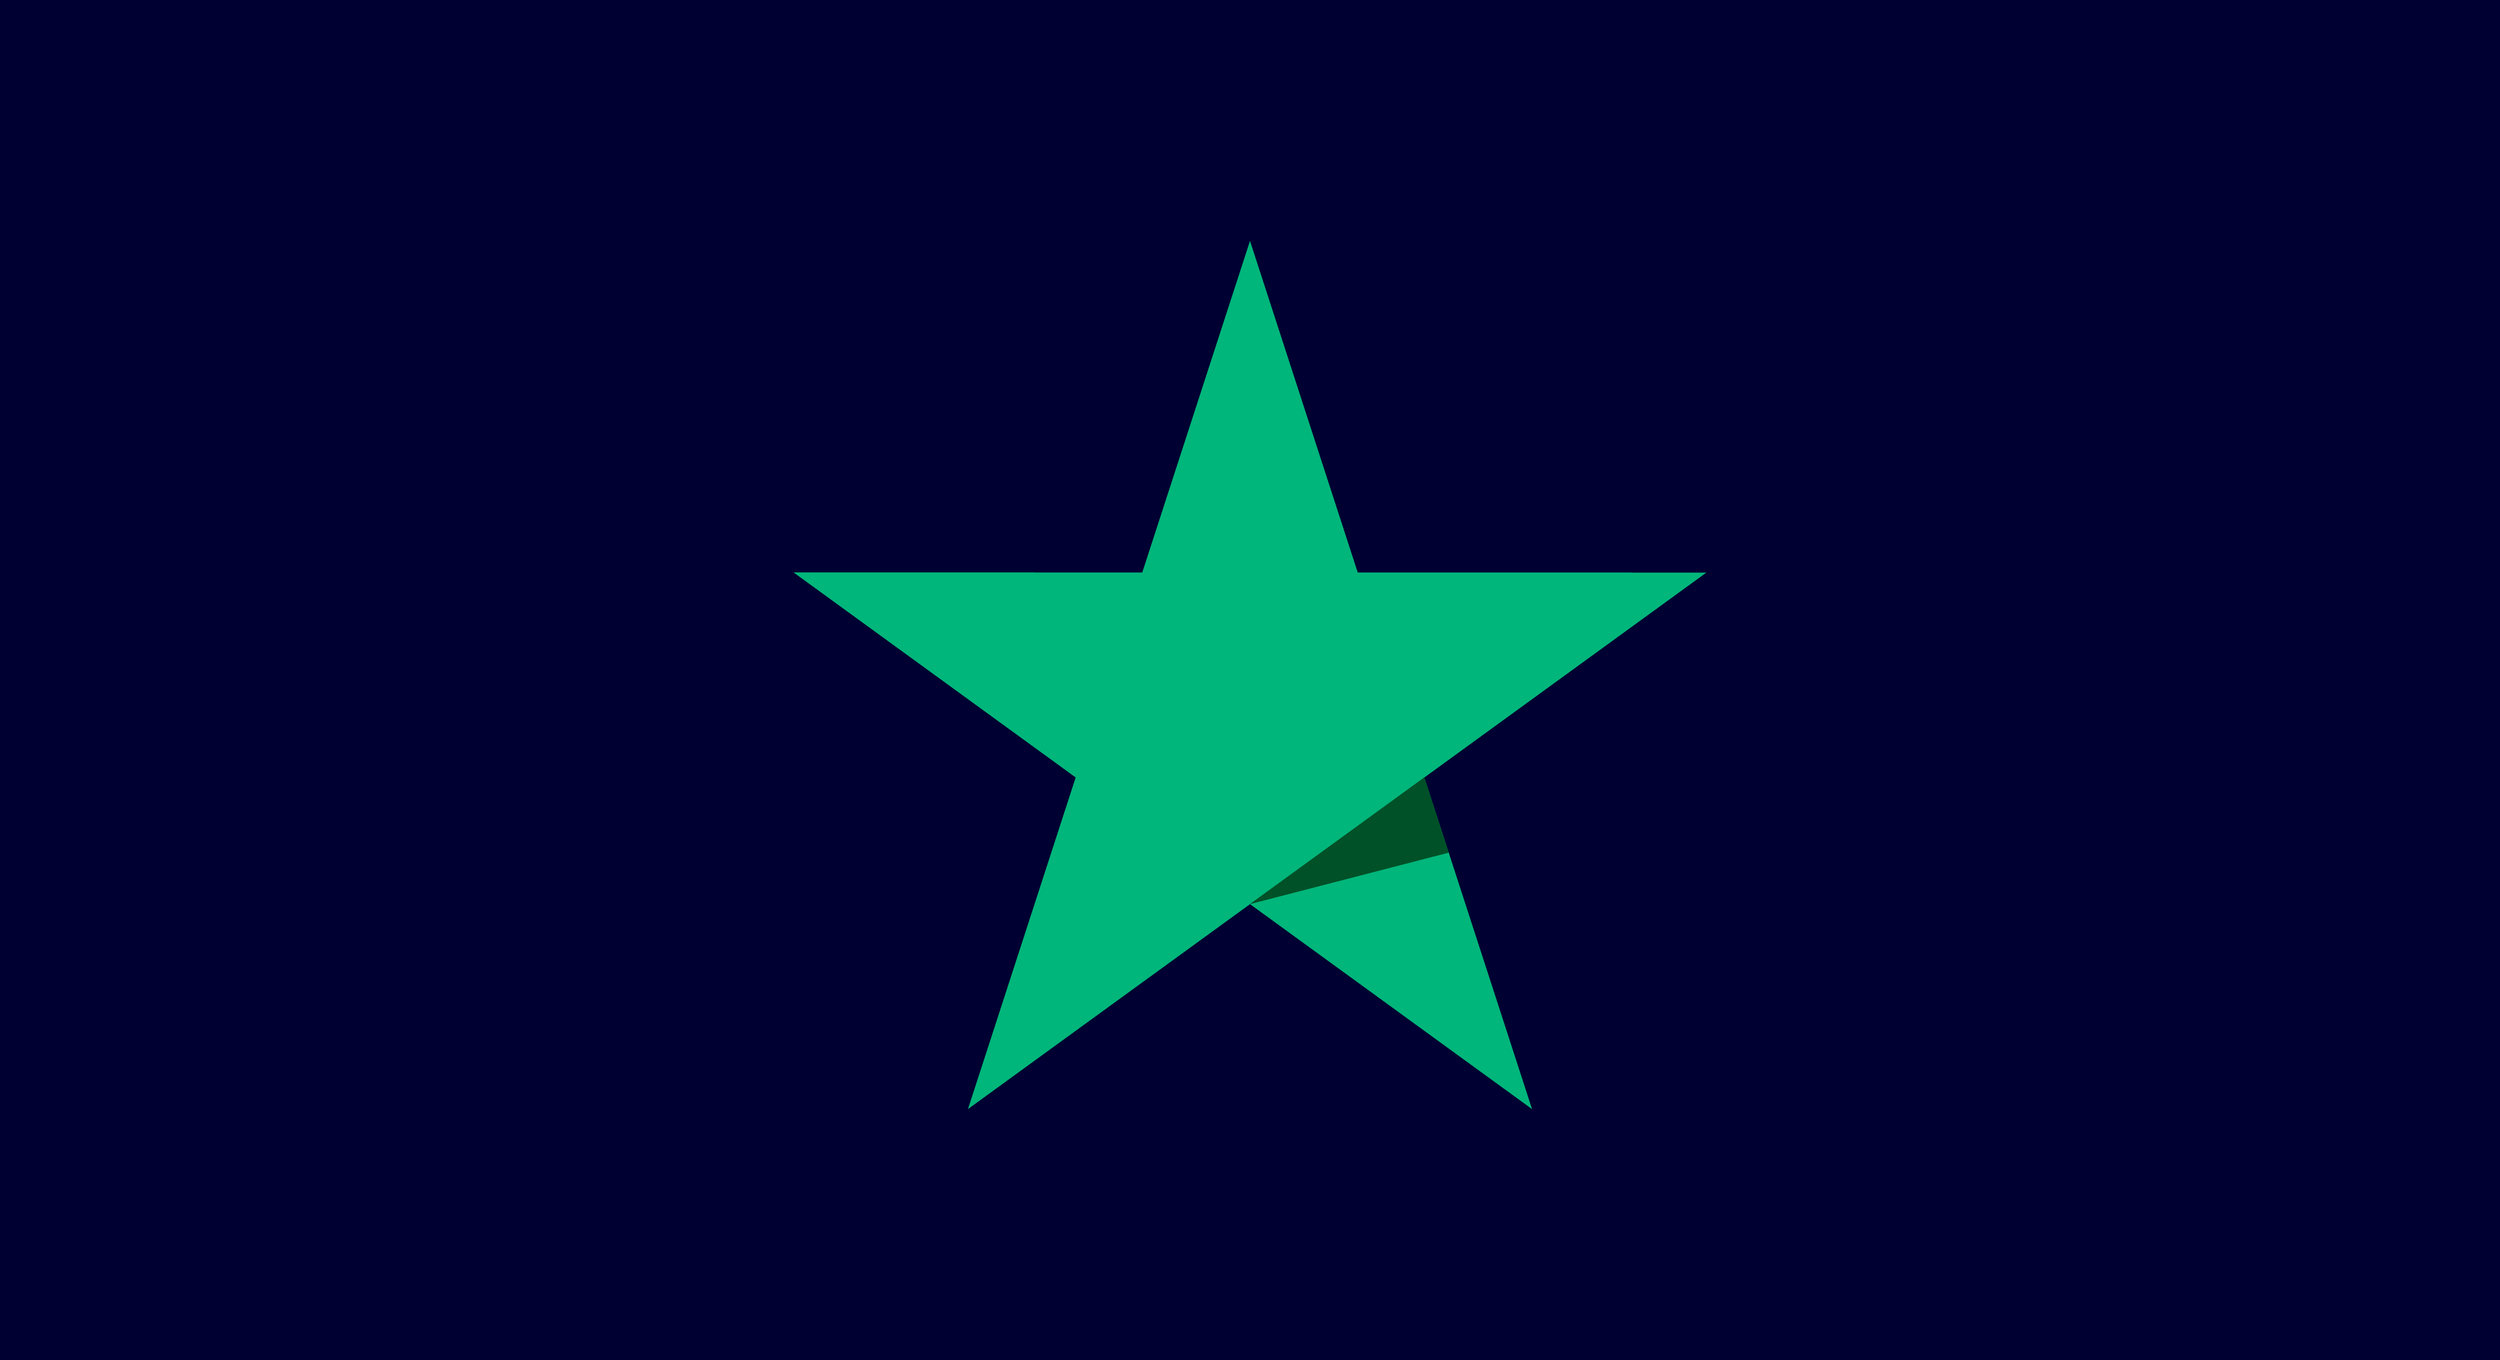 Trustpilot_star-graphic.jpg